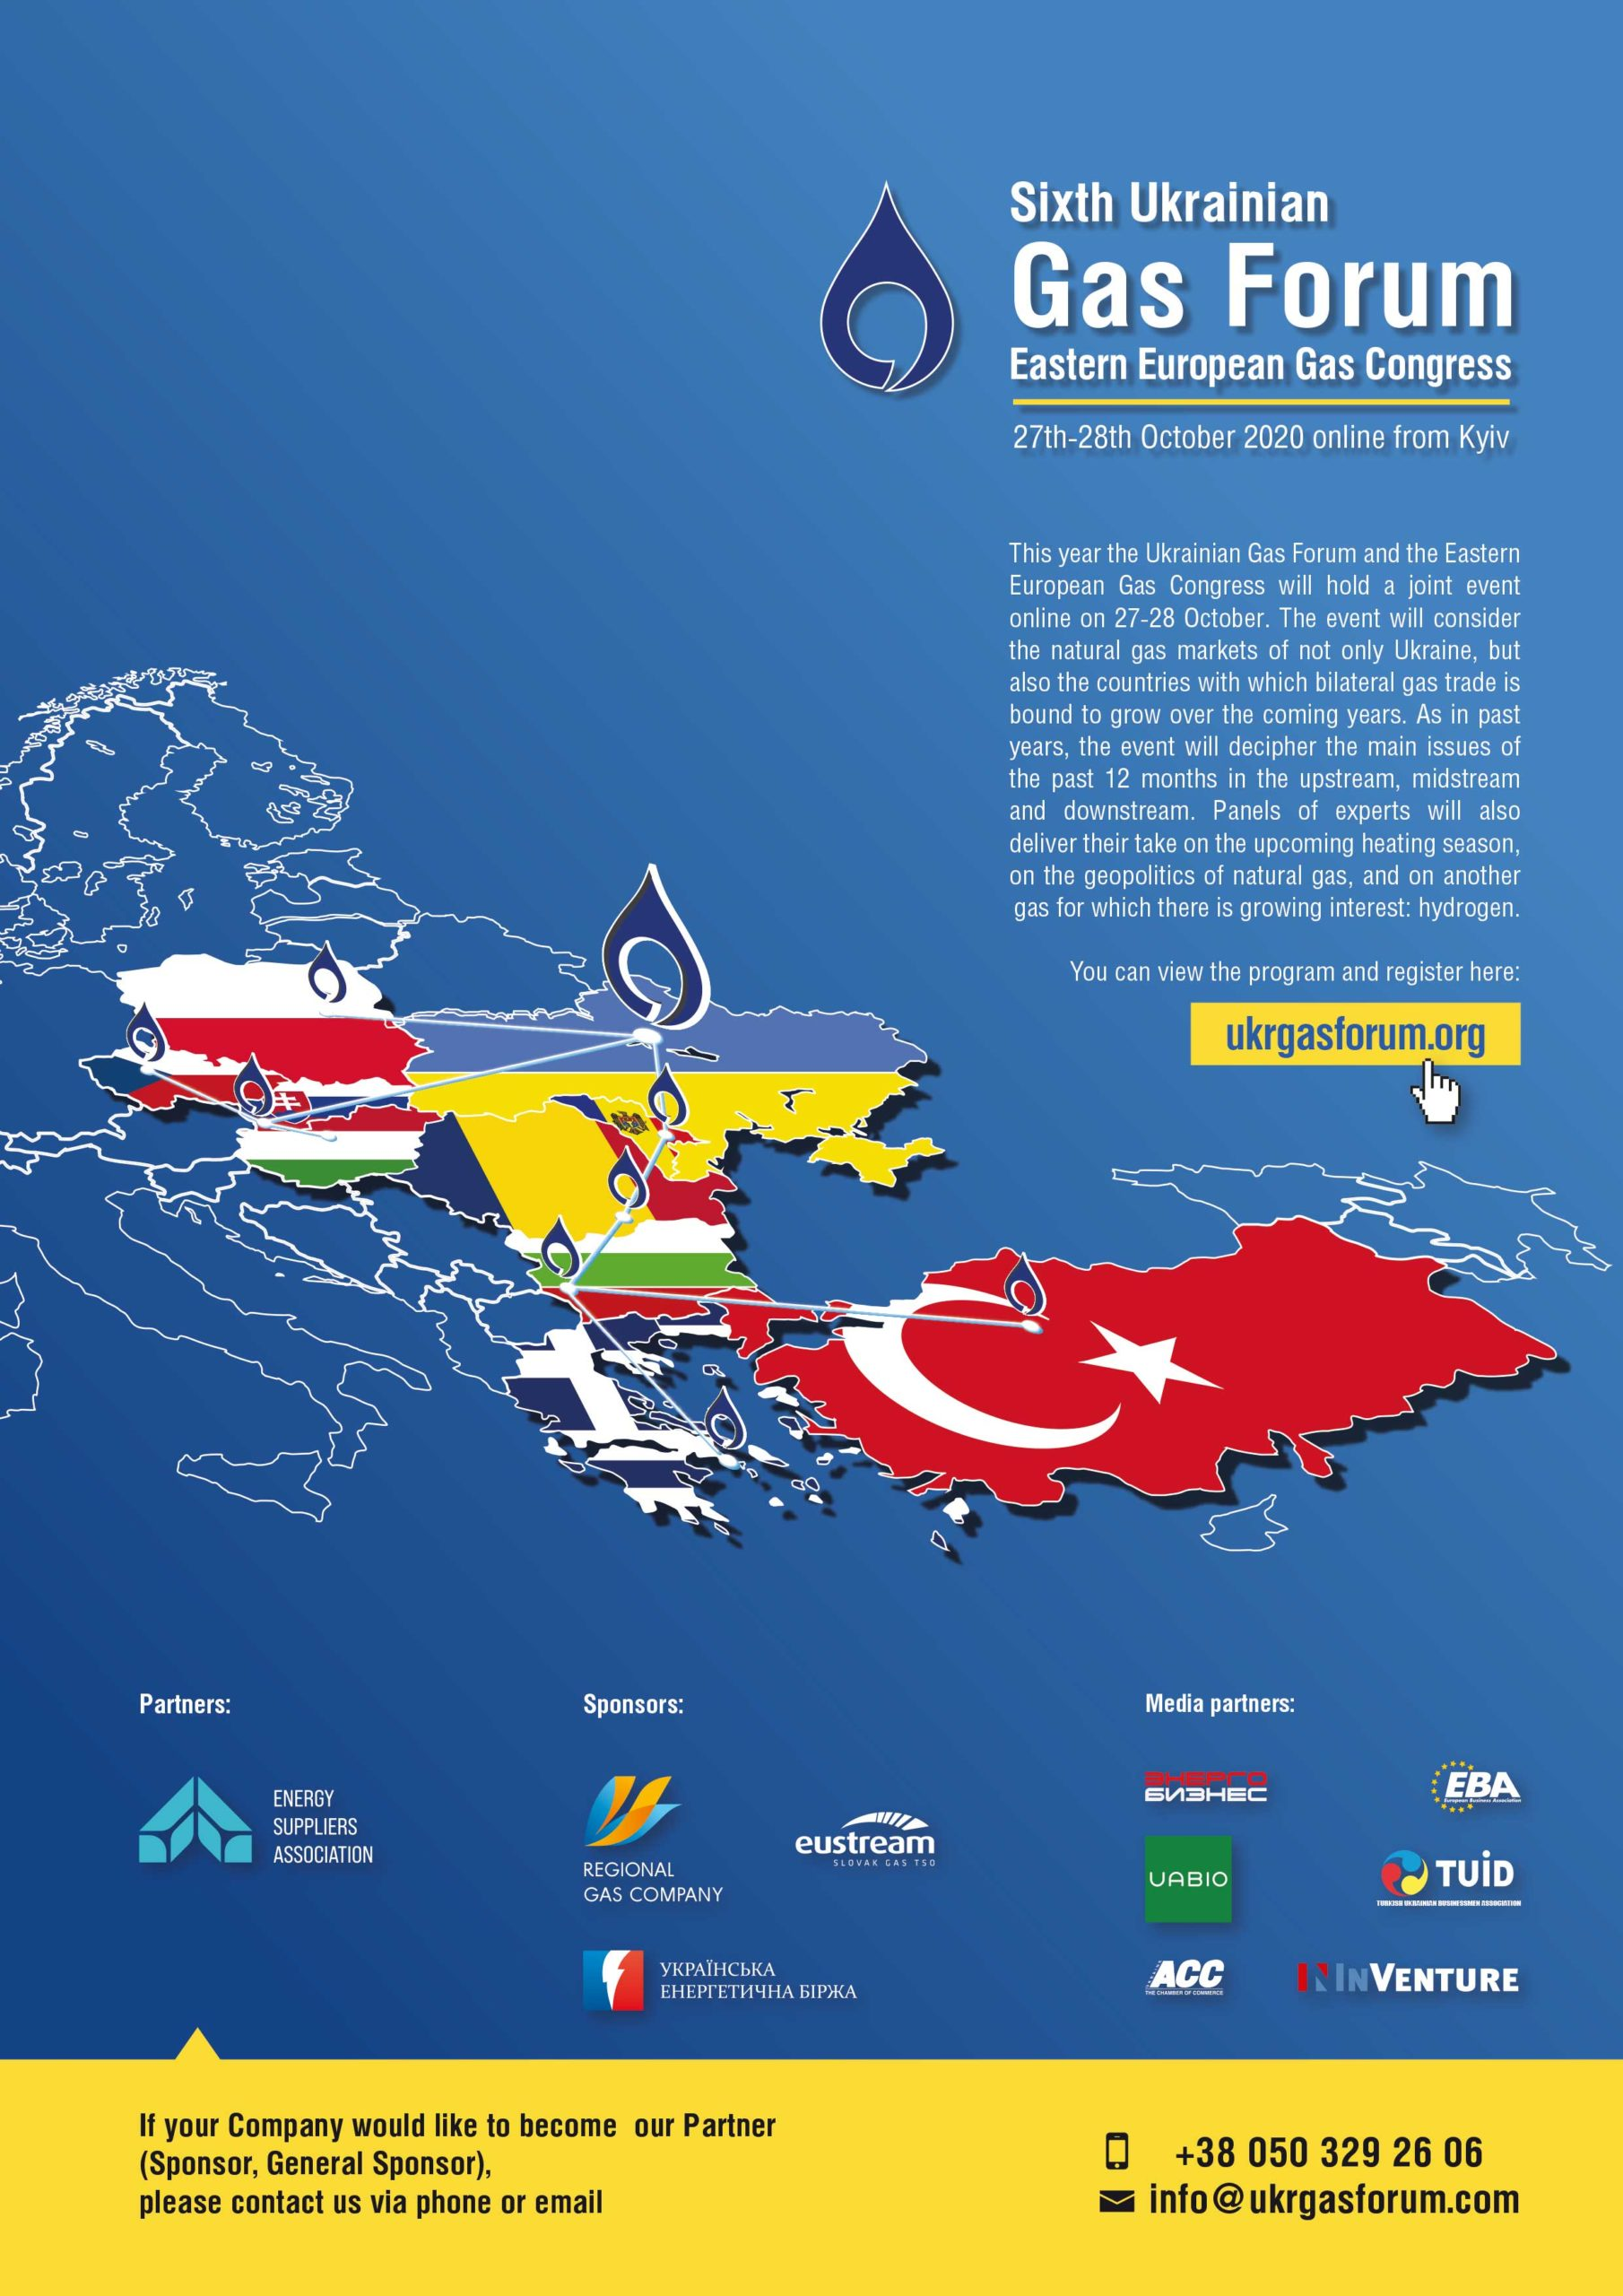 East European Gas Congress 2020